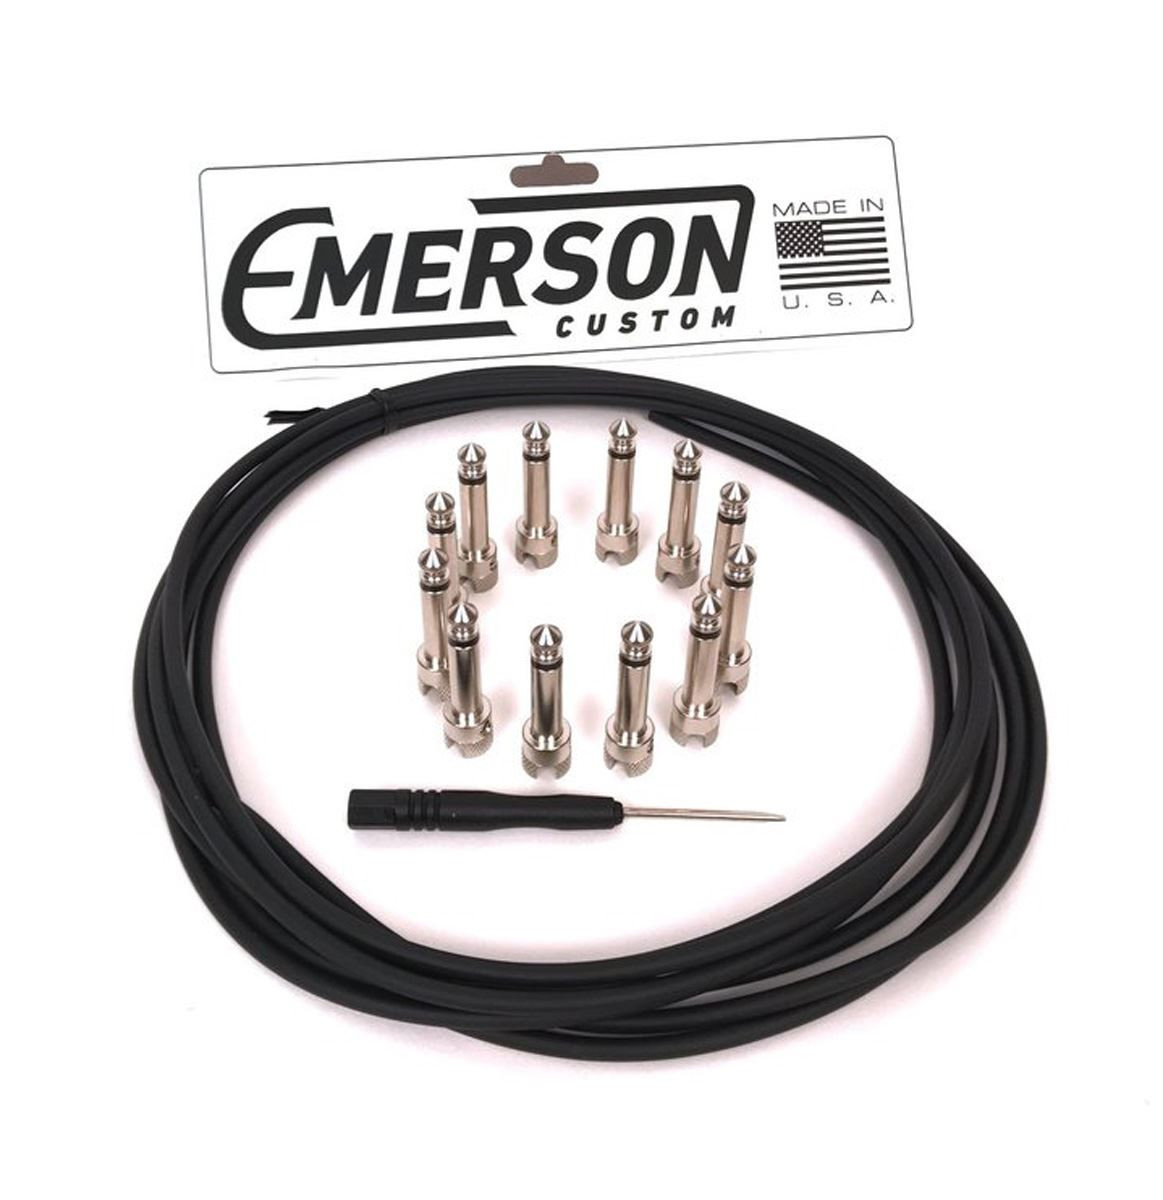 Emerson Custom DIY Solderless Pedalboard Cable Kit - 12' cable / 12 right angle ends